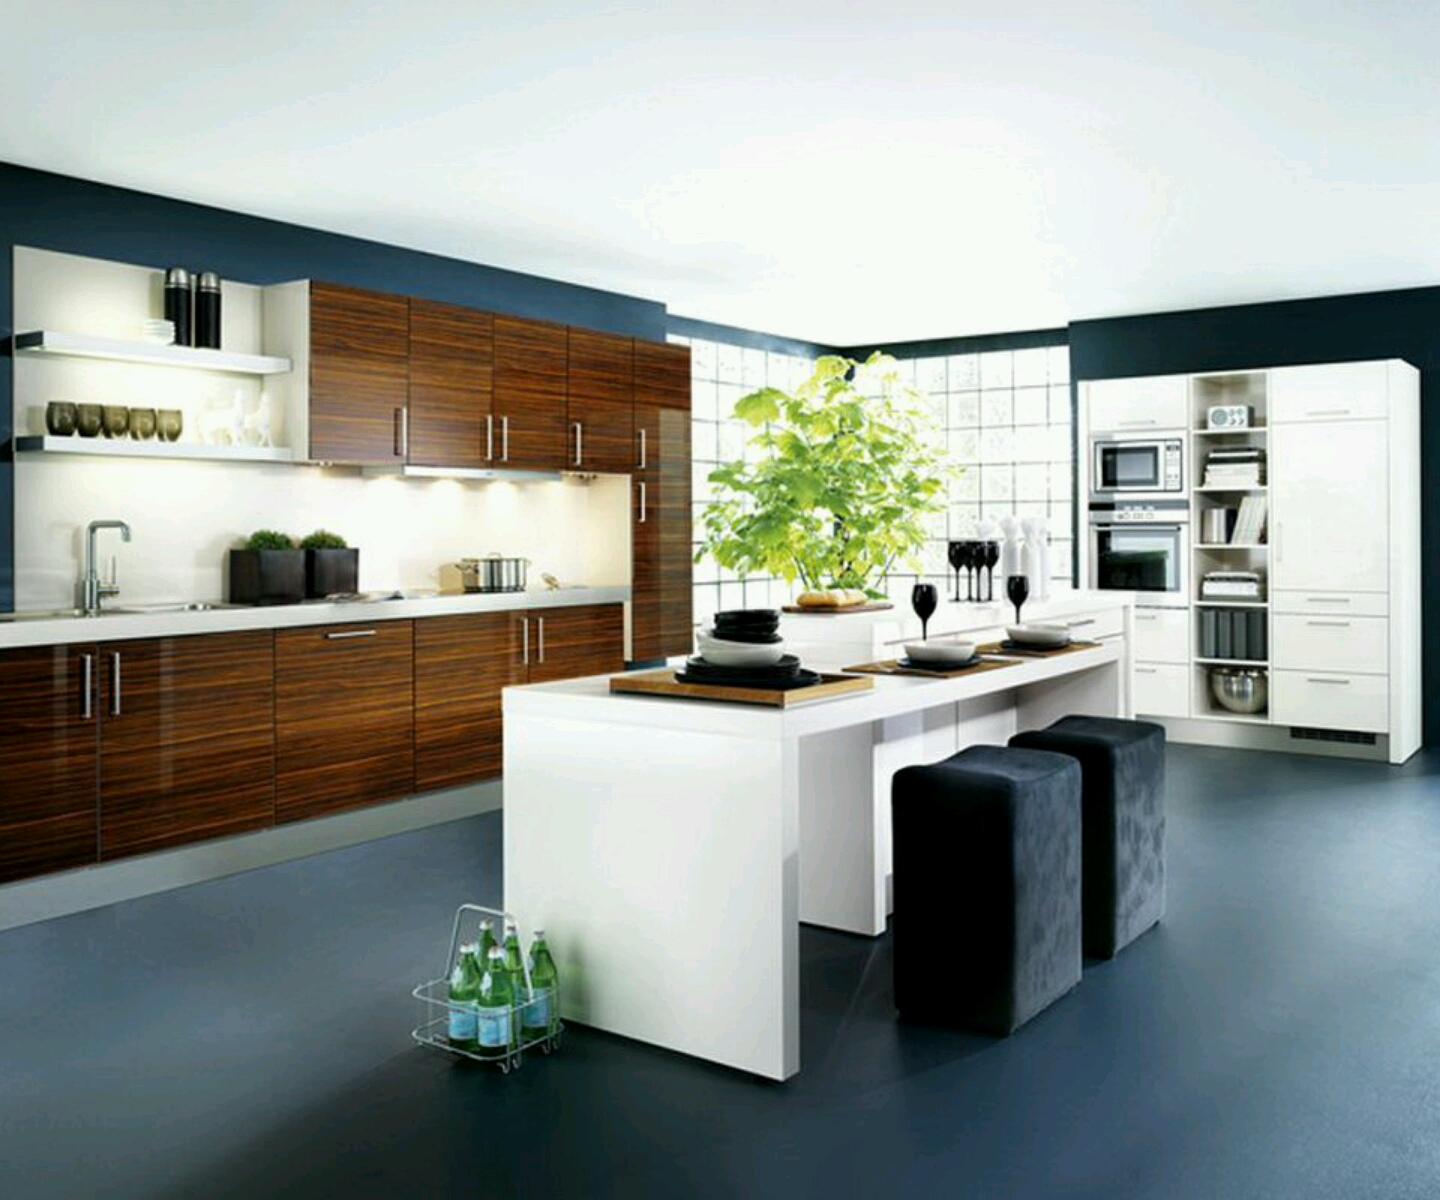 Pictures Of Modern Kitchens: New Home Designs Latest.: Kitchen Cabinets Designs Modern